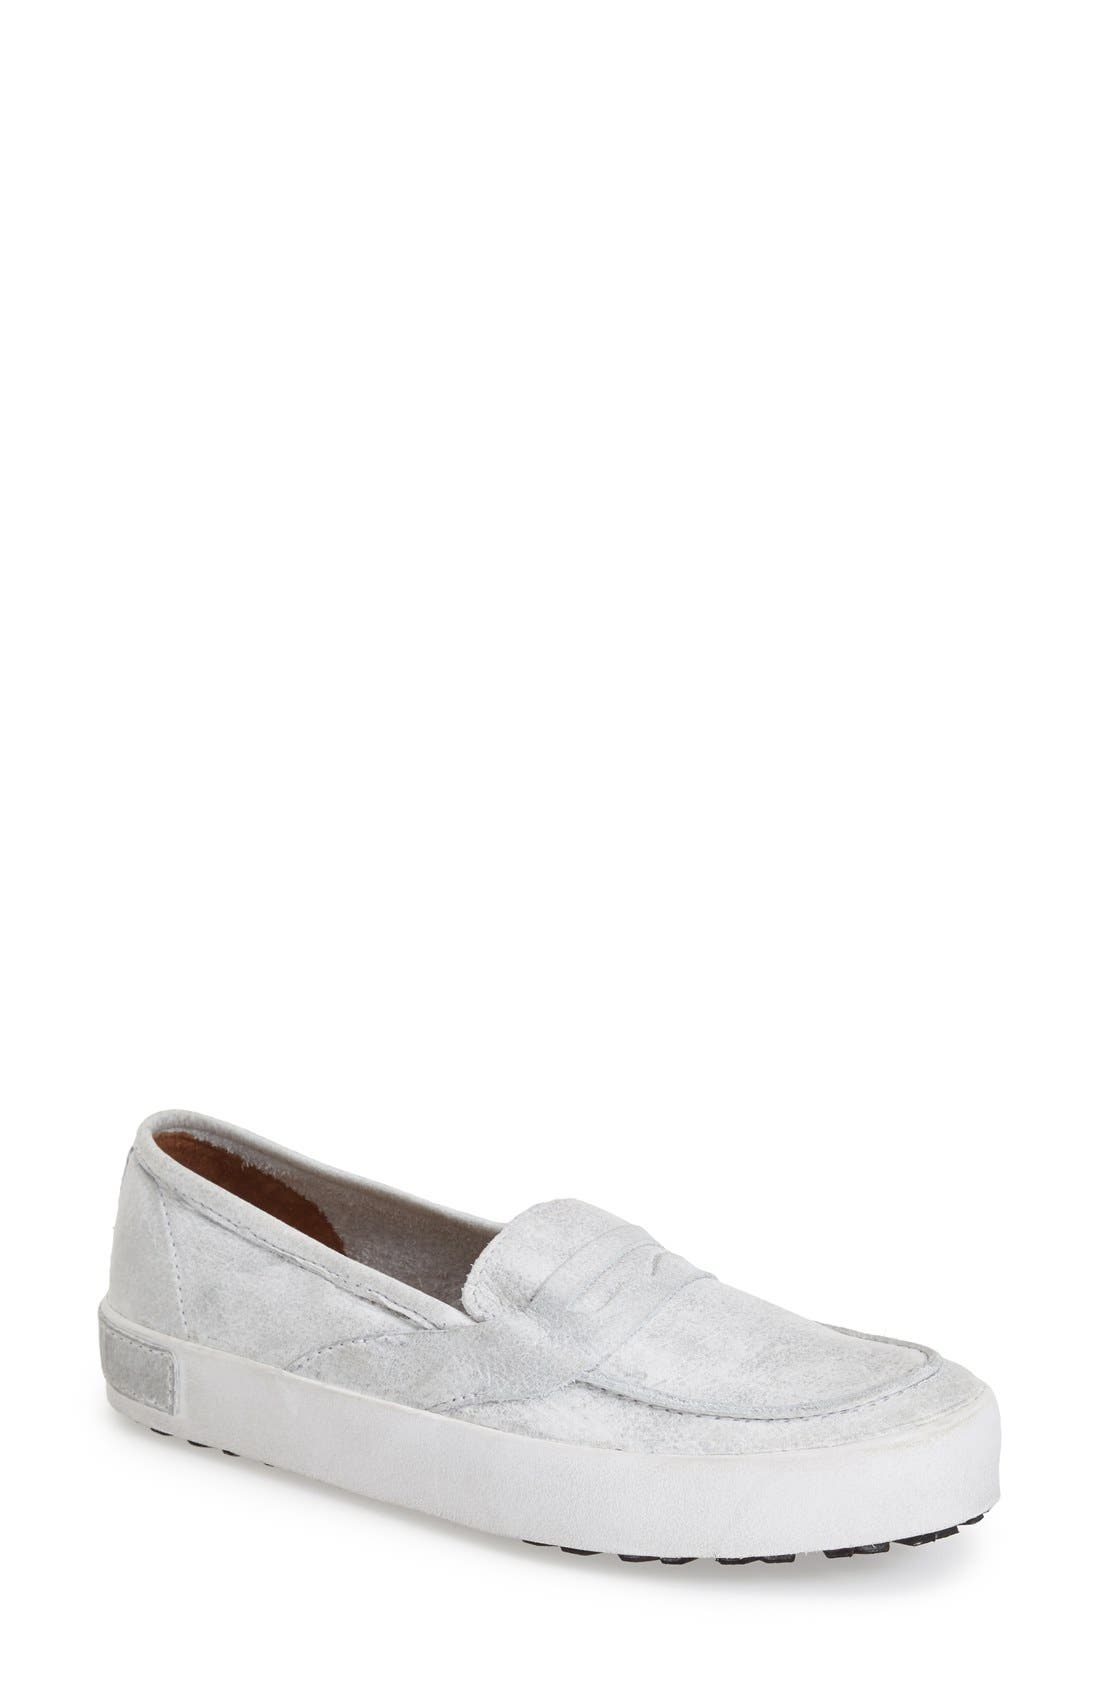 'JL23' Slip-On Sneaker,                             Main thumbnail 1, color,                             White Metallic